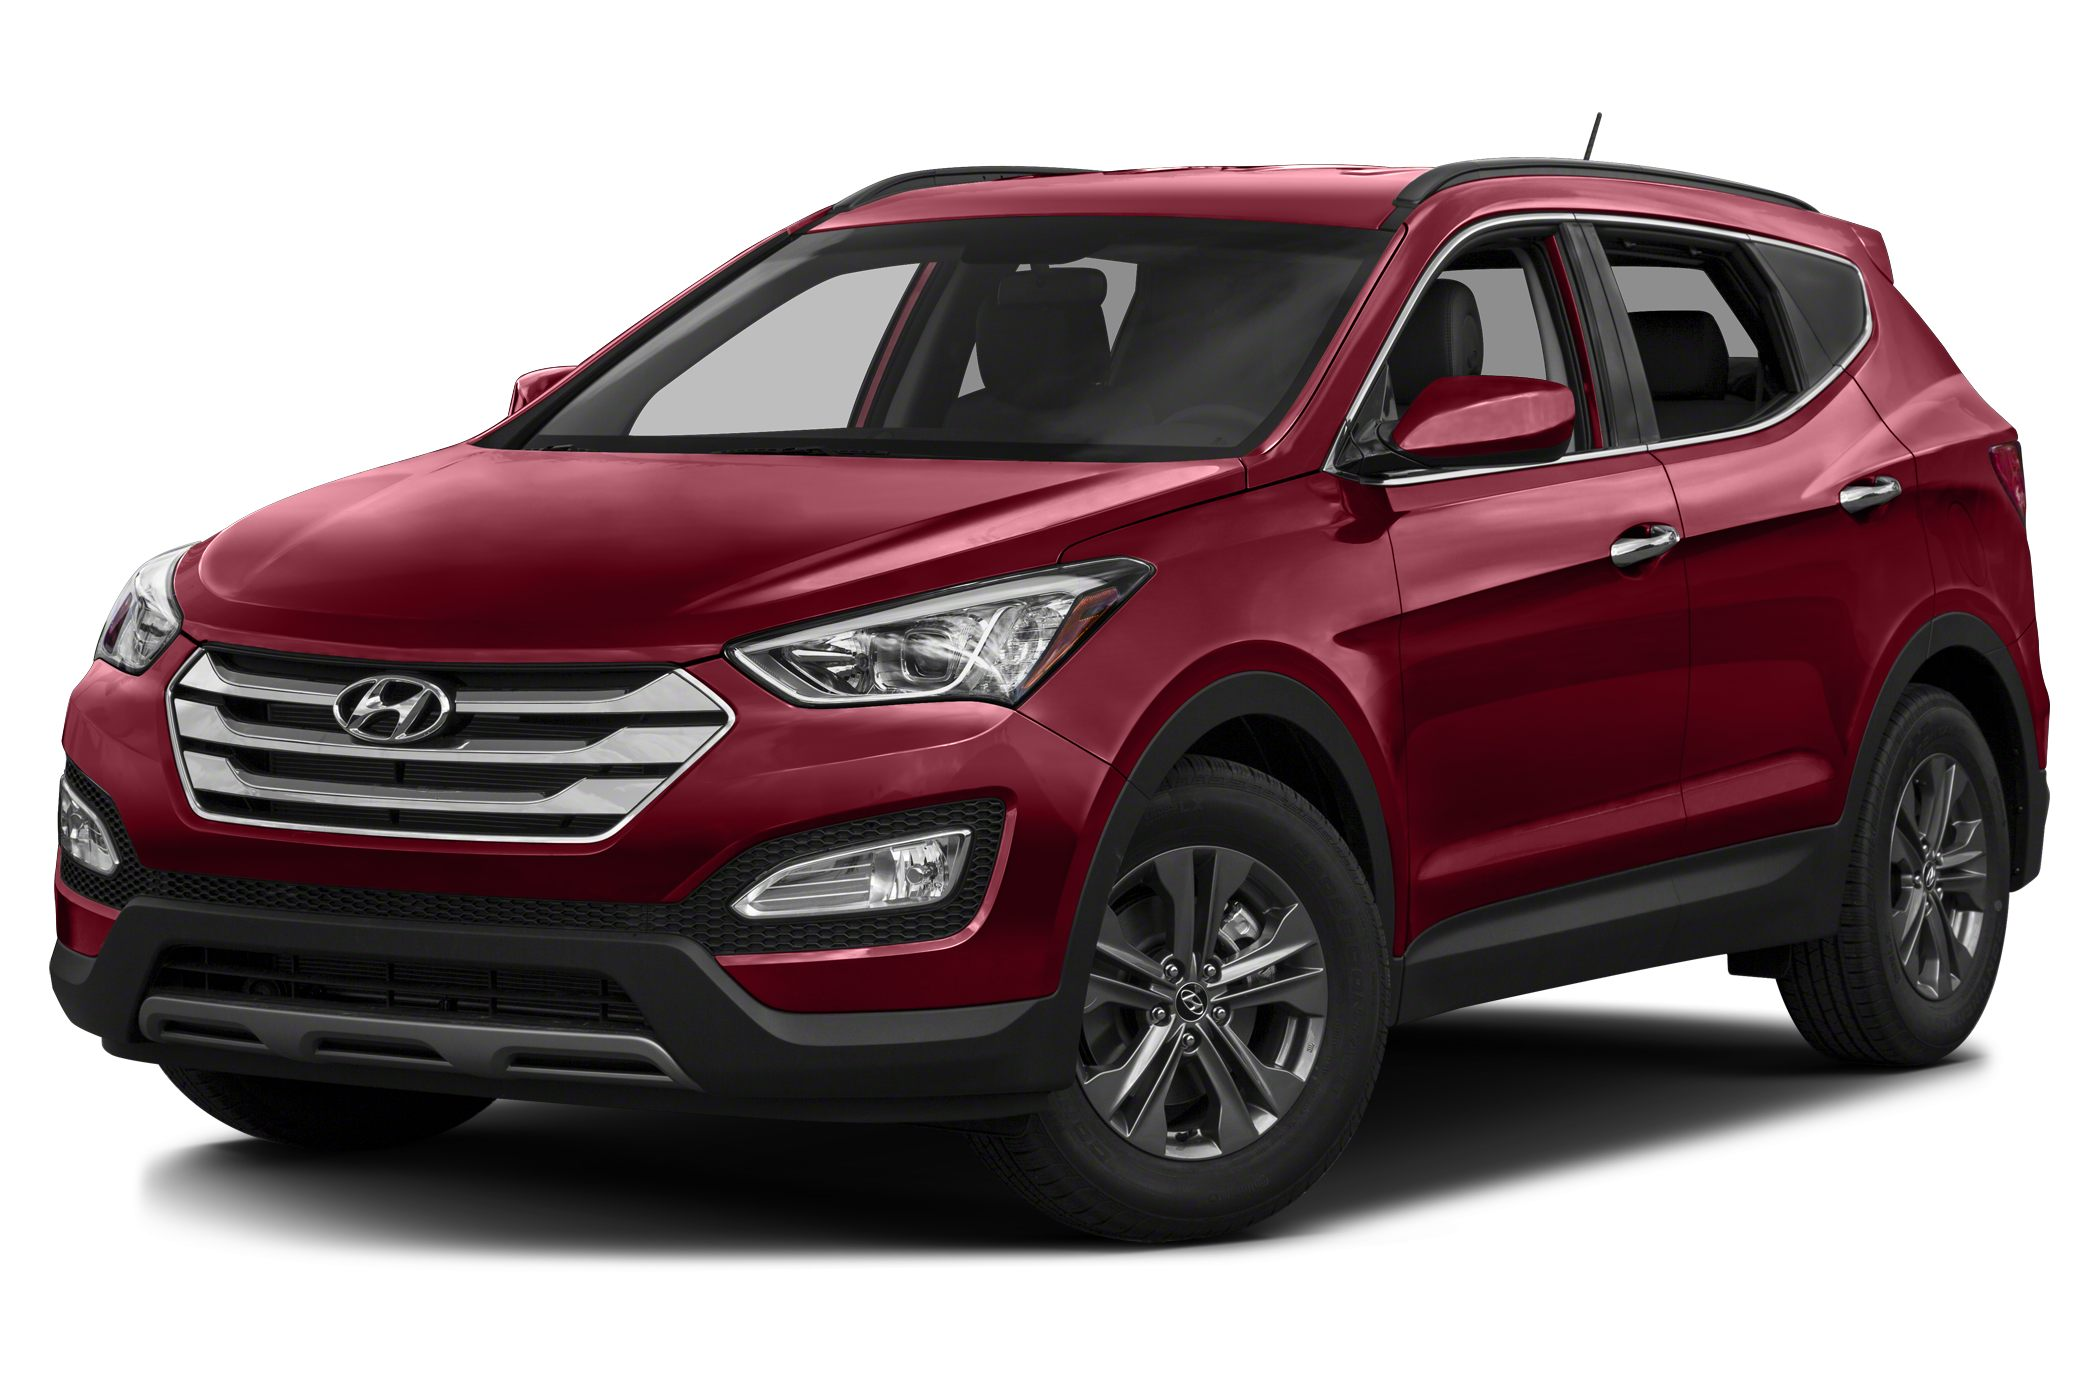 2013 Hyundai Santa Fe Sport 2.0T SUV for sale in Houma for $24,000 with 37,384 miles